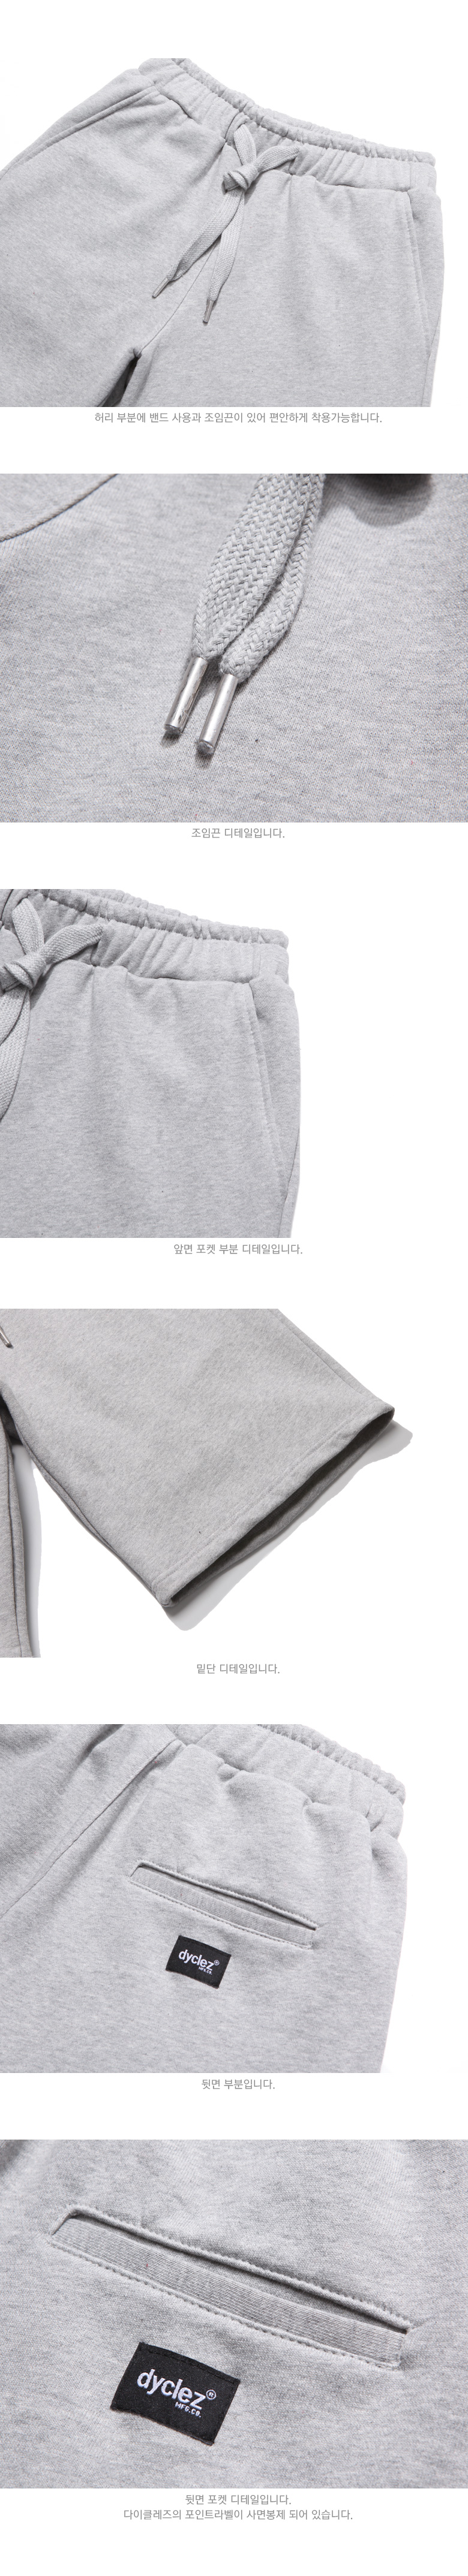 20180615_dy_classicjjuri_short_pants_detail_gray_uk_02.jpg